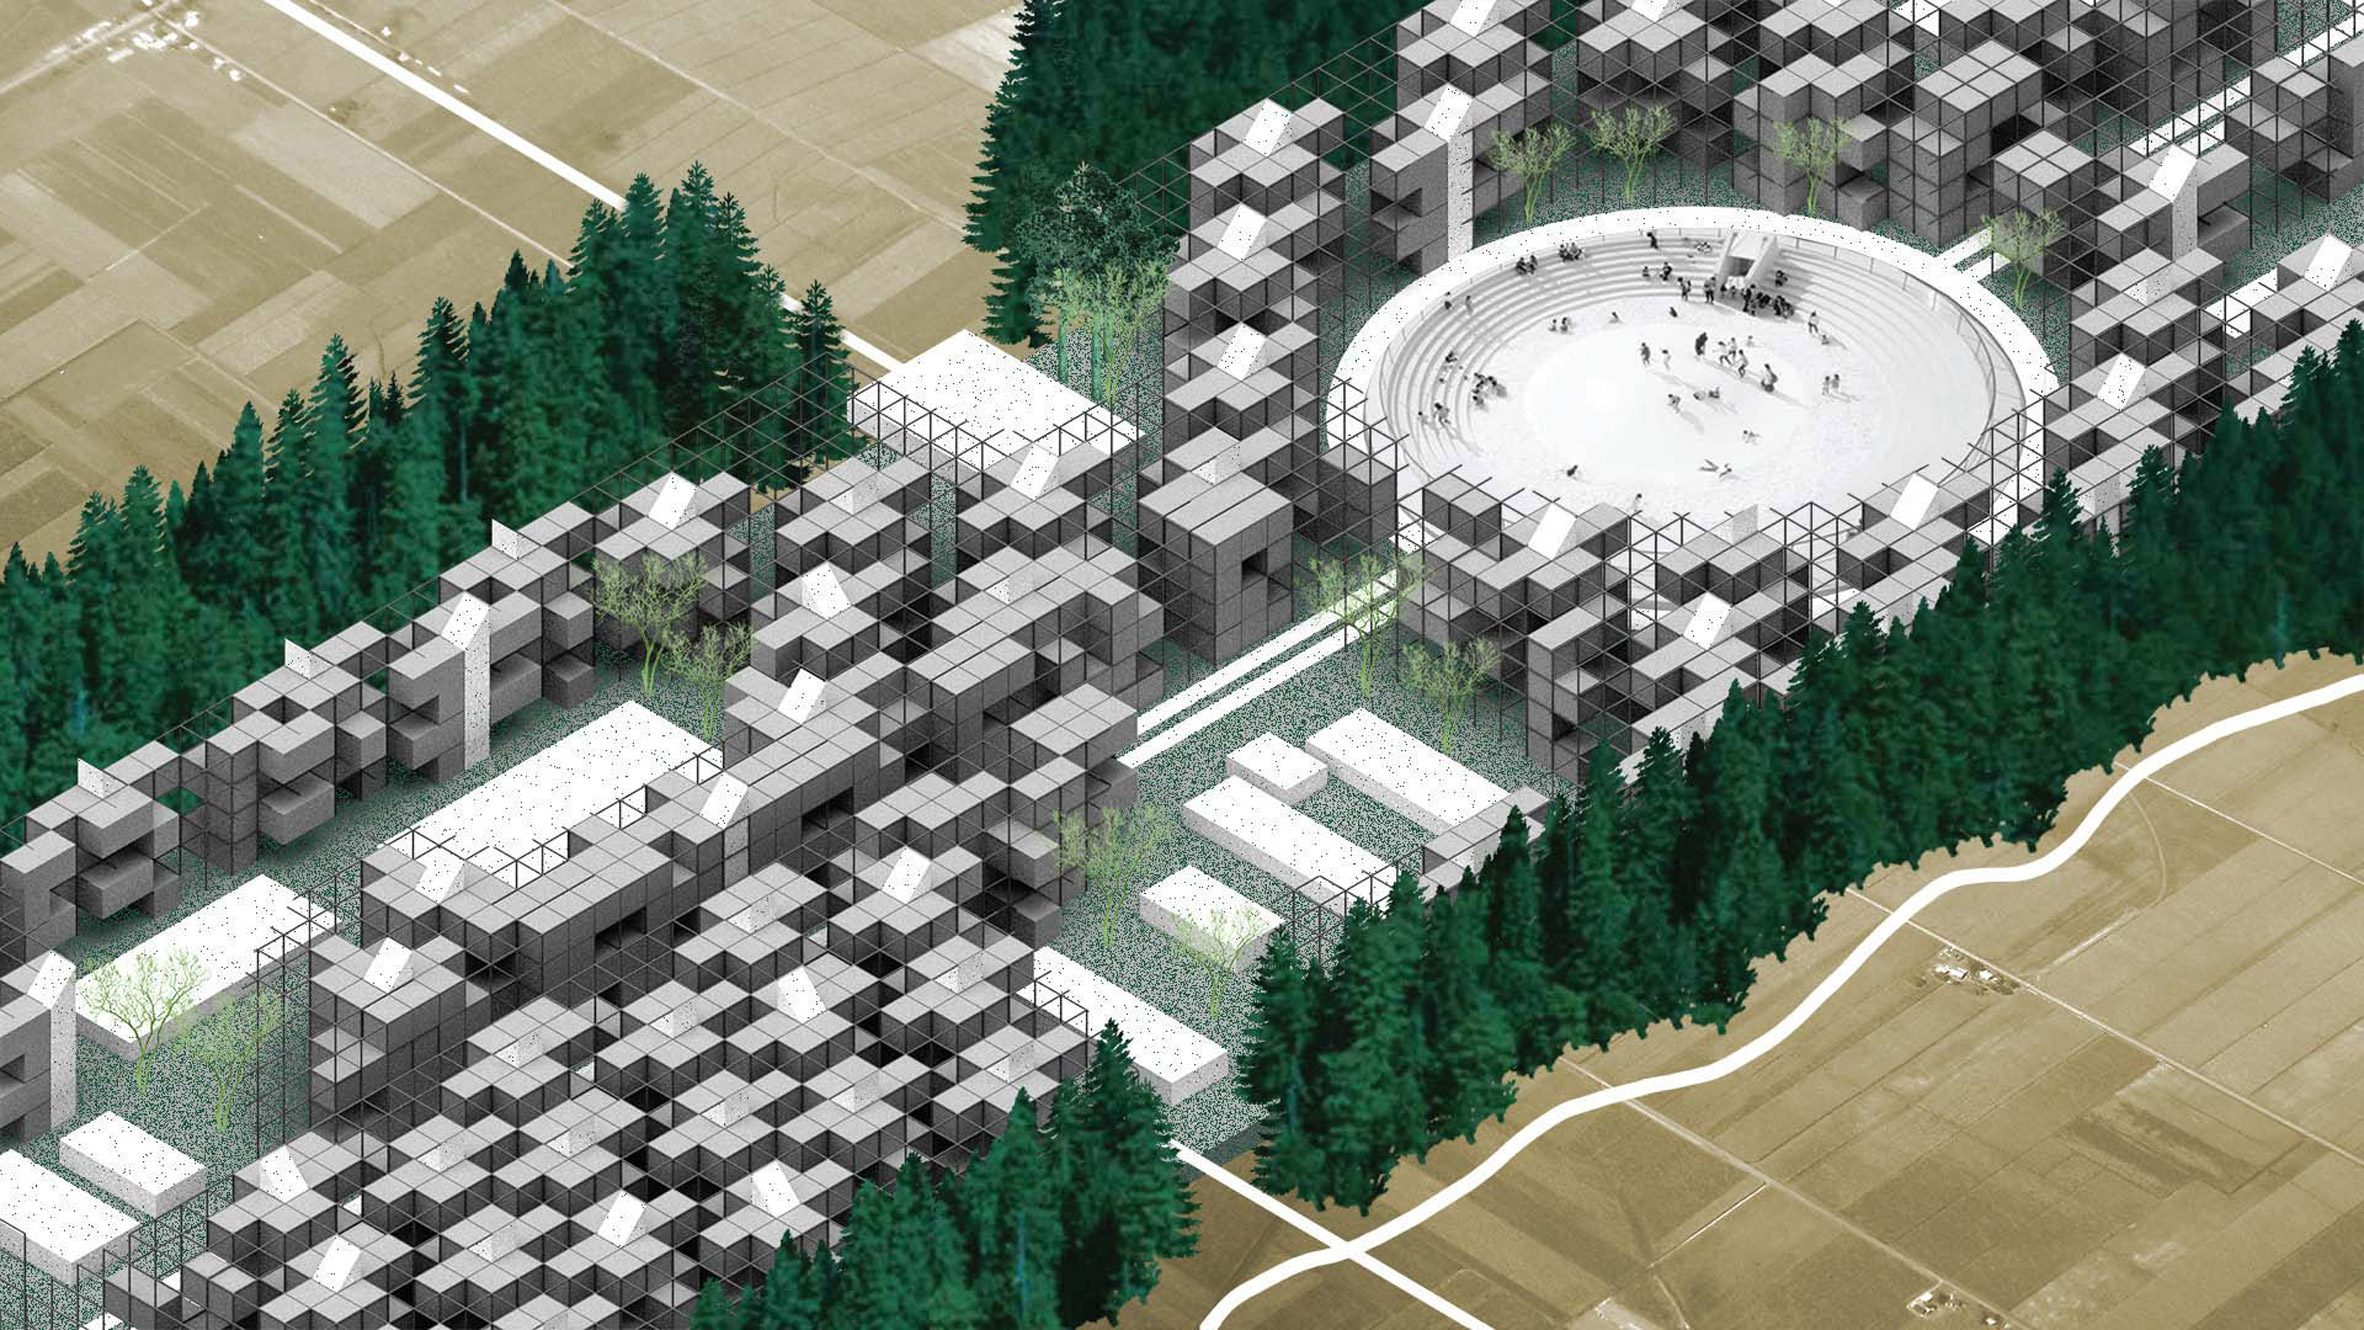 A bird's eye view model of a new urban environment with trees dotted around